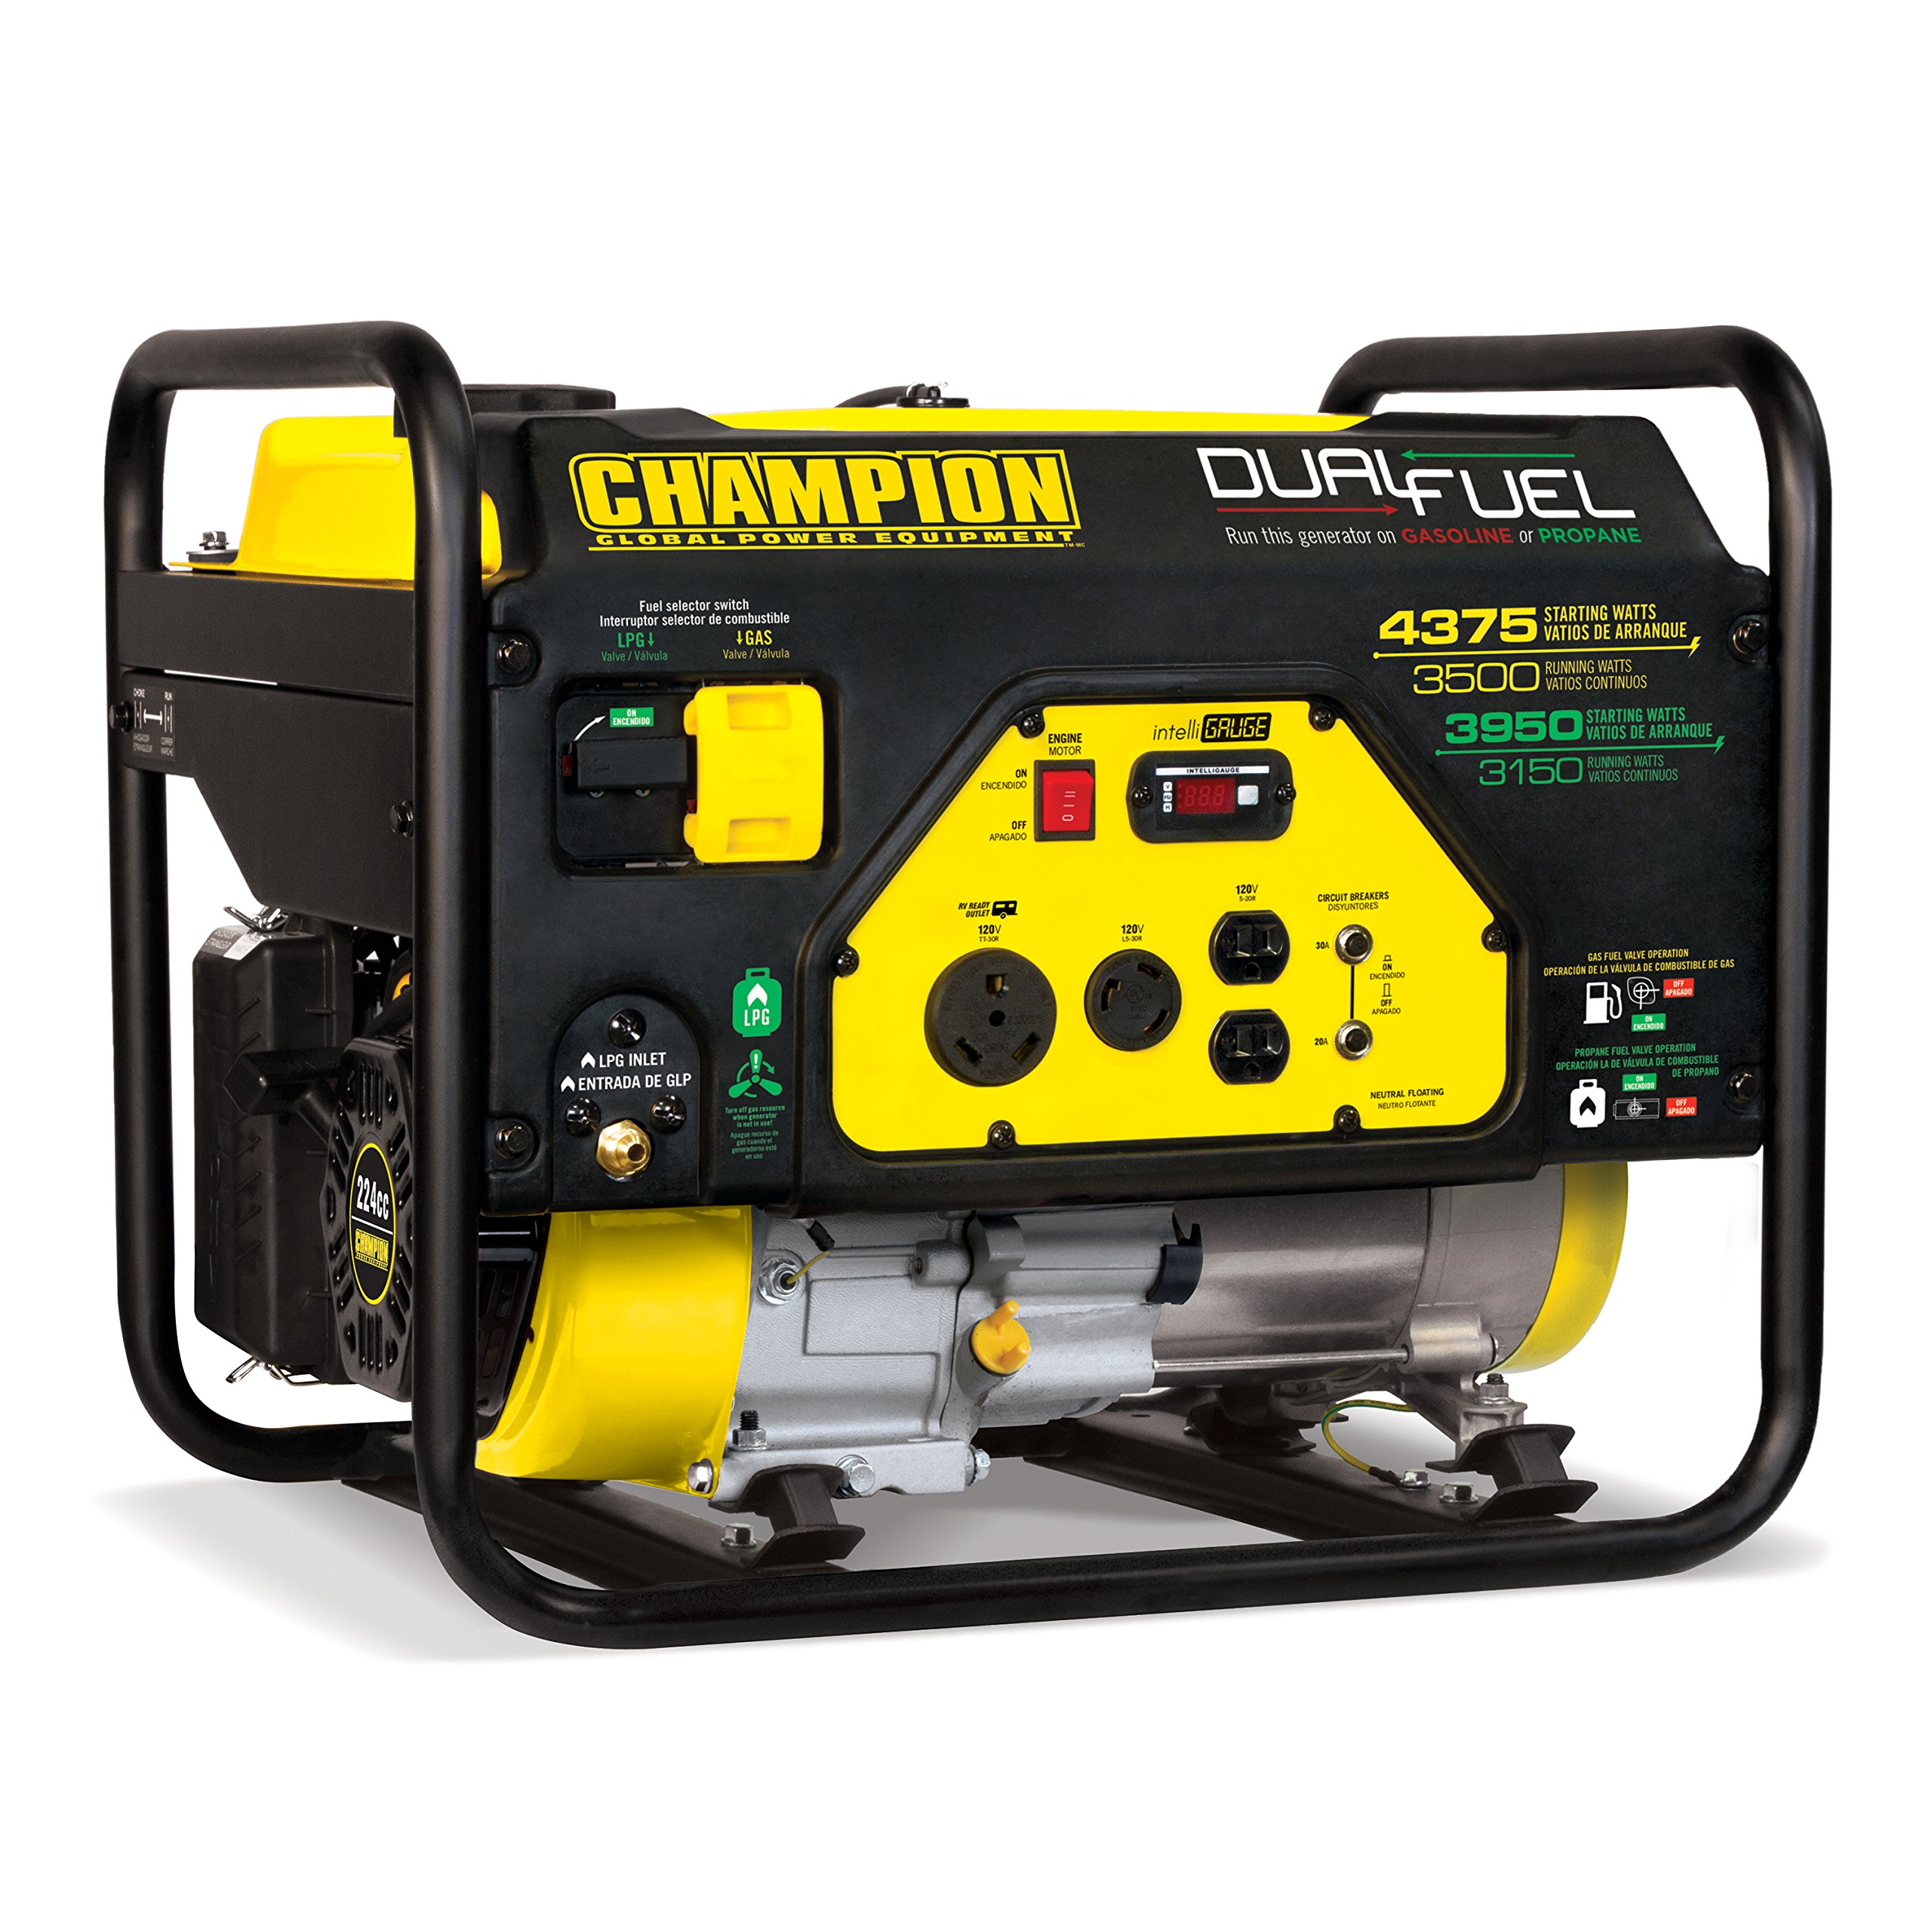 Champion 3500-Watt Dual Fuel RV Ready Portable Generator by Champion Power Equipment